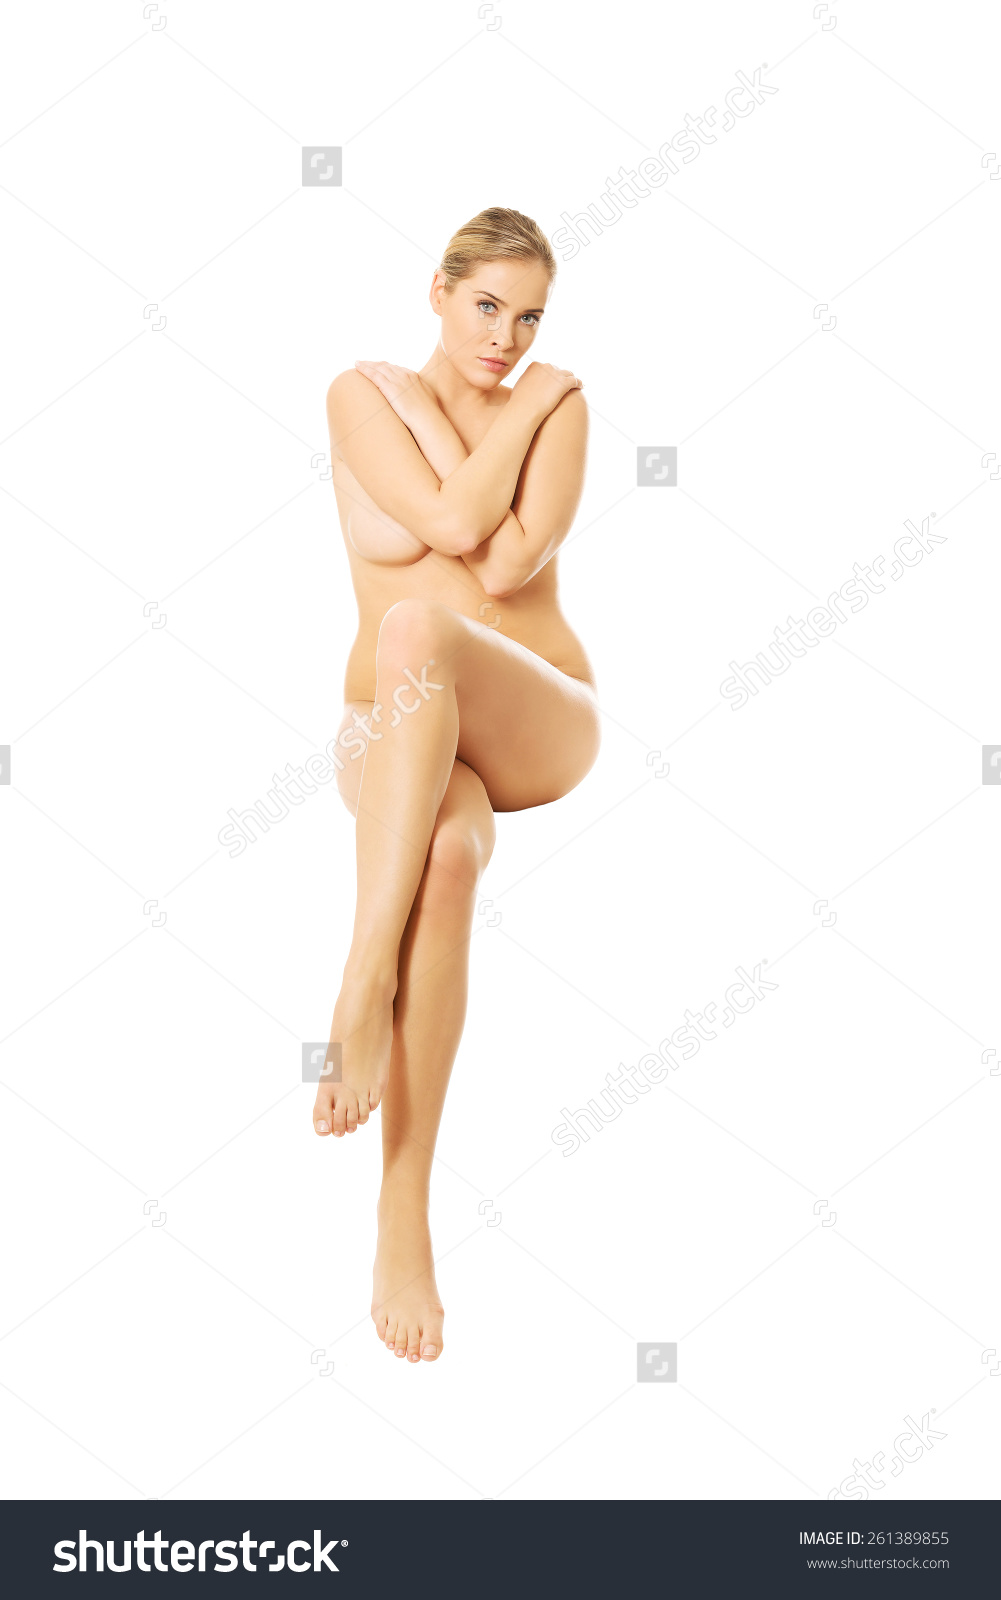 stock-photo-full-length-of-nude-woman-sitting-with-crossed-hands-261389855.jpg